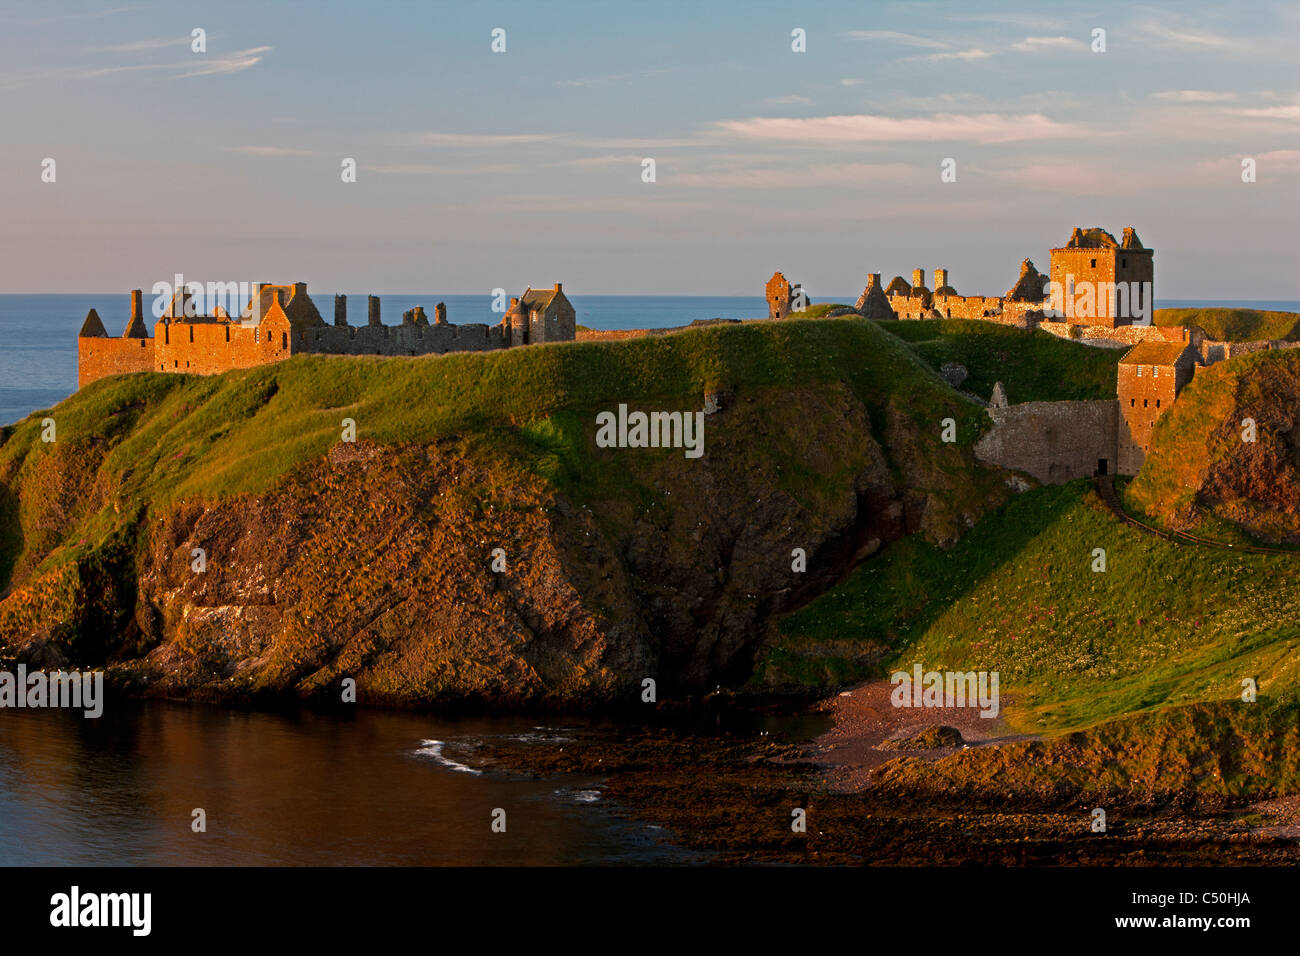 A view looking down onto Dunnottar Castle in the morning light, near Stonehaven, Aberdeenshire, Scotland - Stock Image